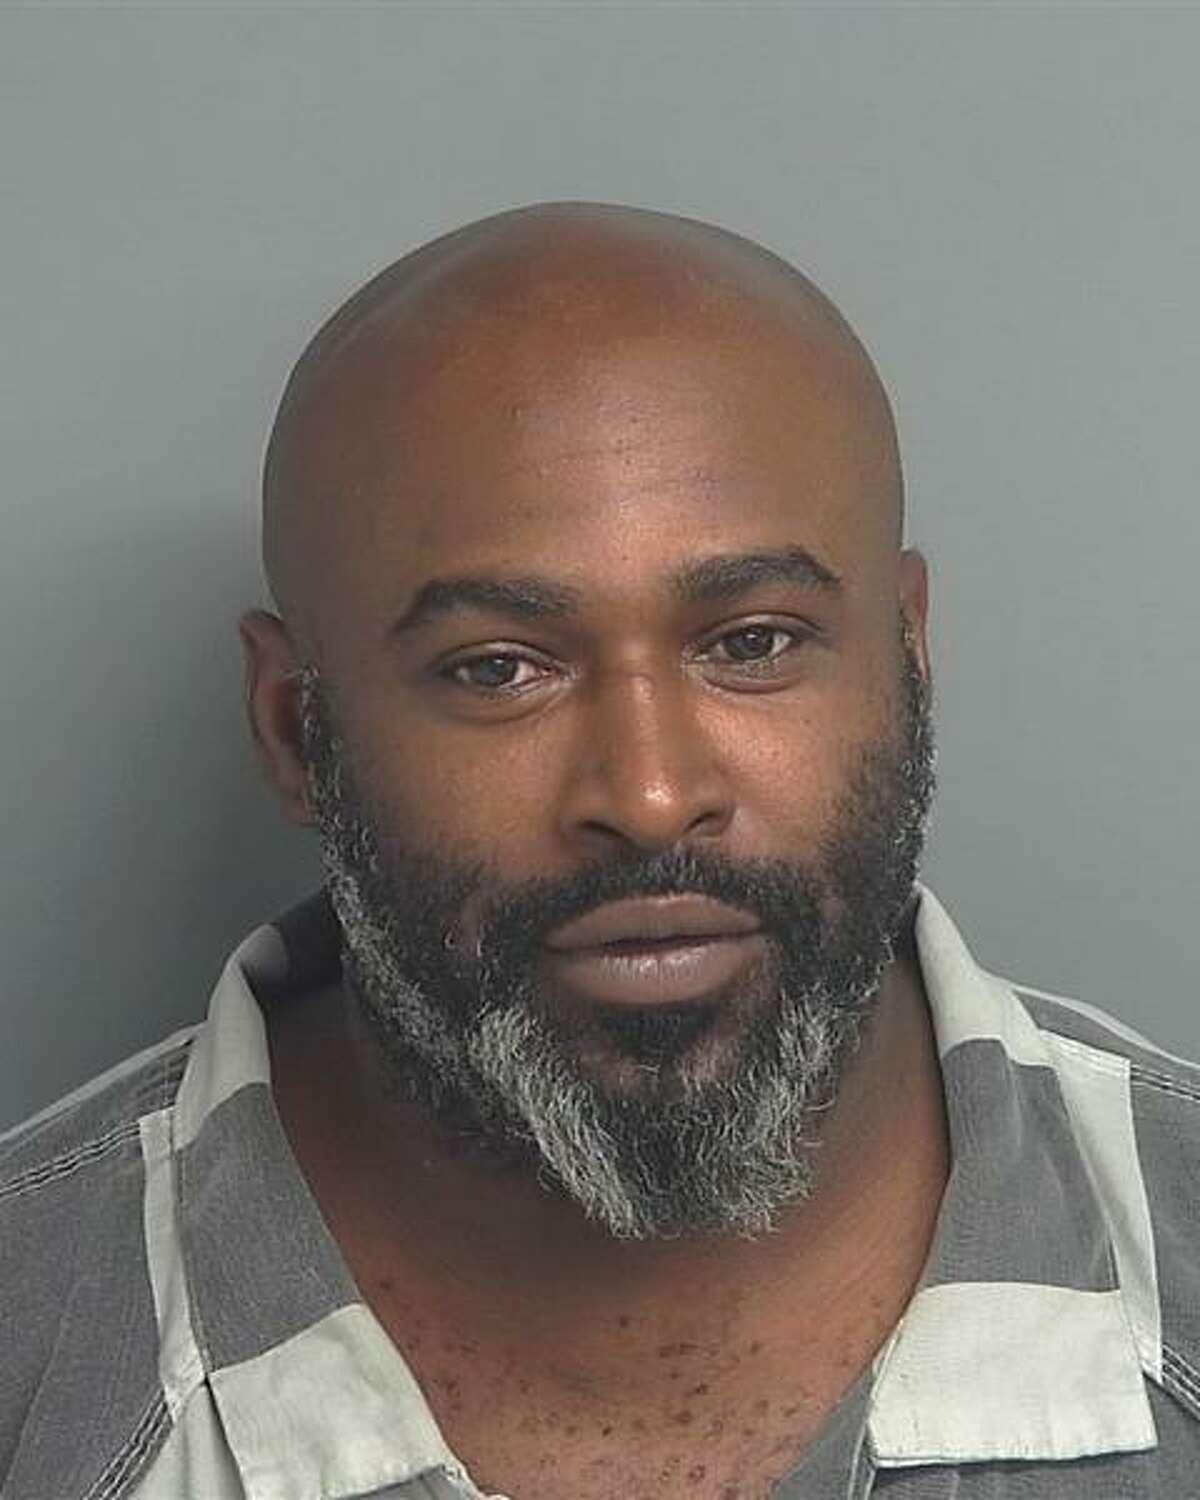 Chadrick Eugene Bradley, 43, of Conroe was convicted of assault family strangulation, a second-degree felony offense, and family violence assault causing bodily injury, a third-degree felony.